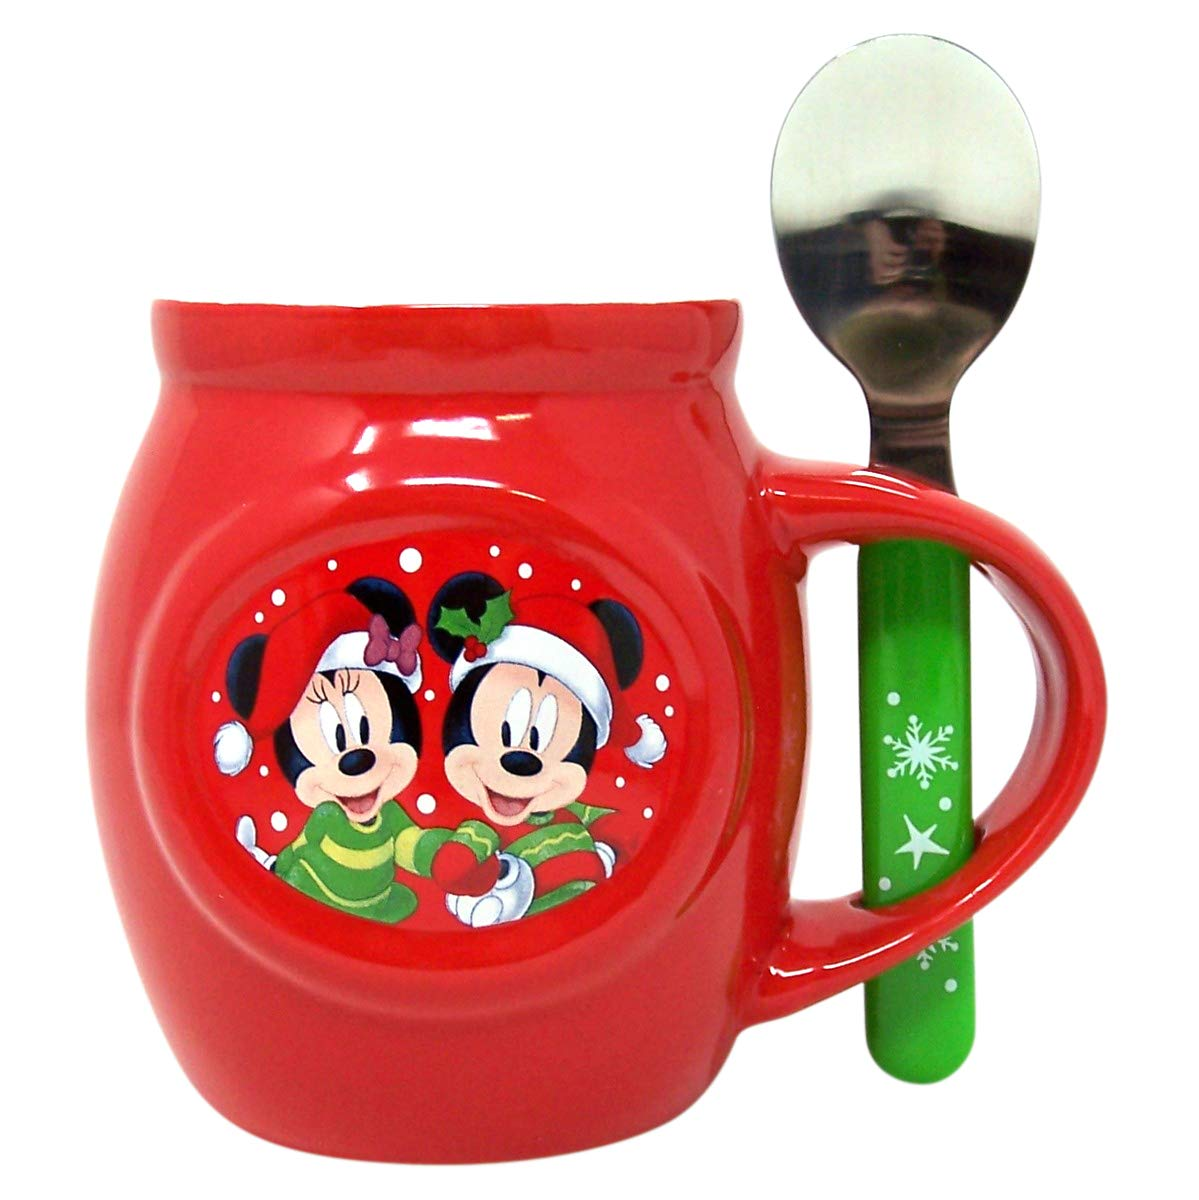 Disney Mickey and Minnie Christmas Mug and Spoon Gift Set with Cocoa Mix and Marshmallows  1 70 oz